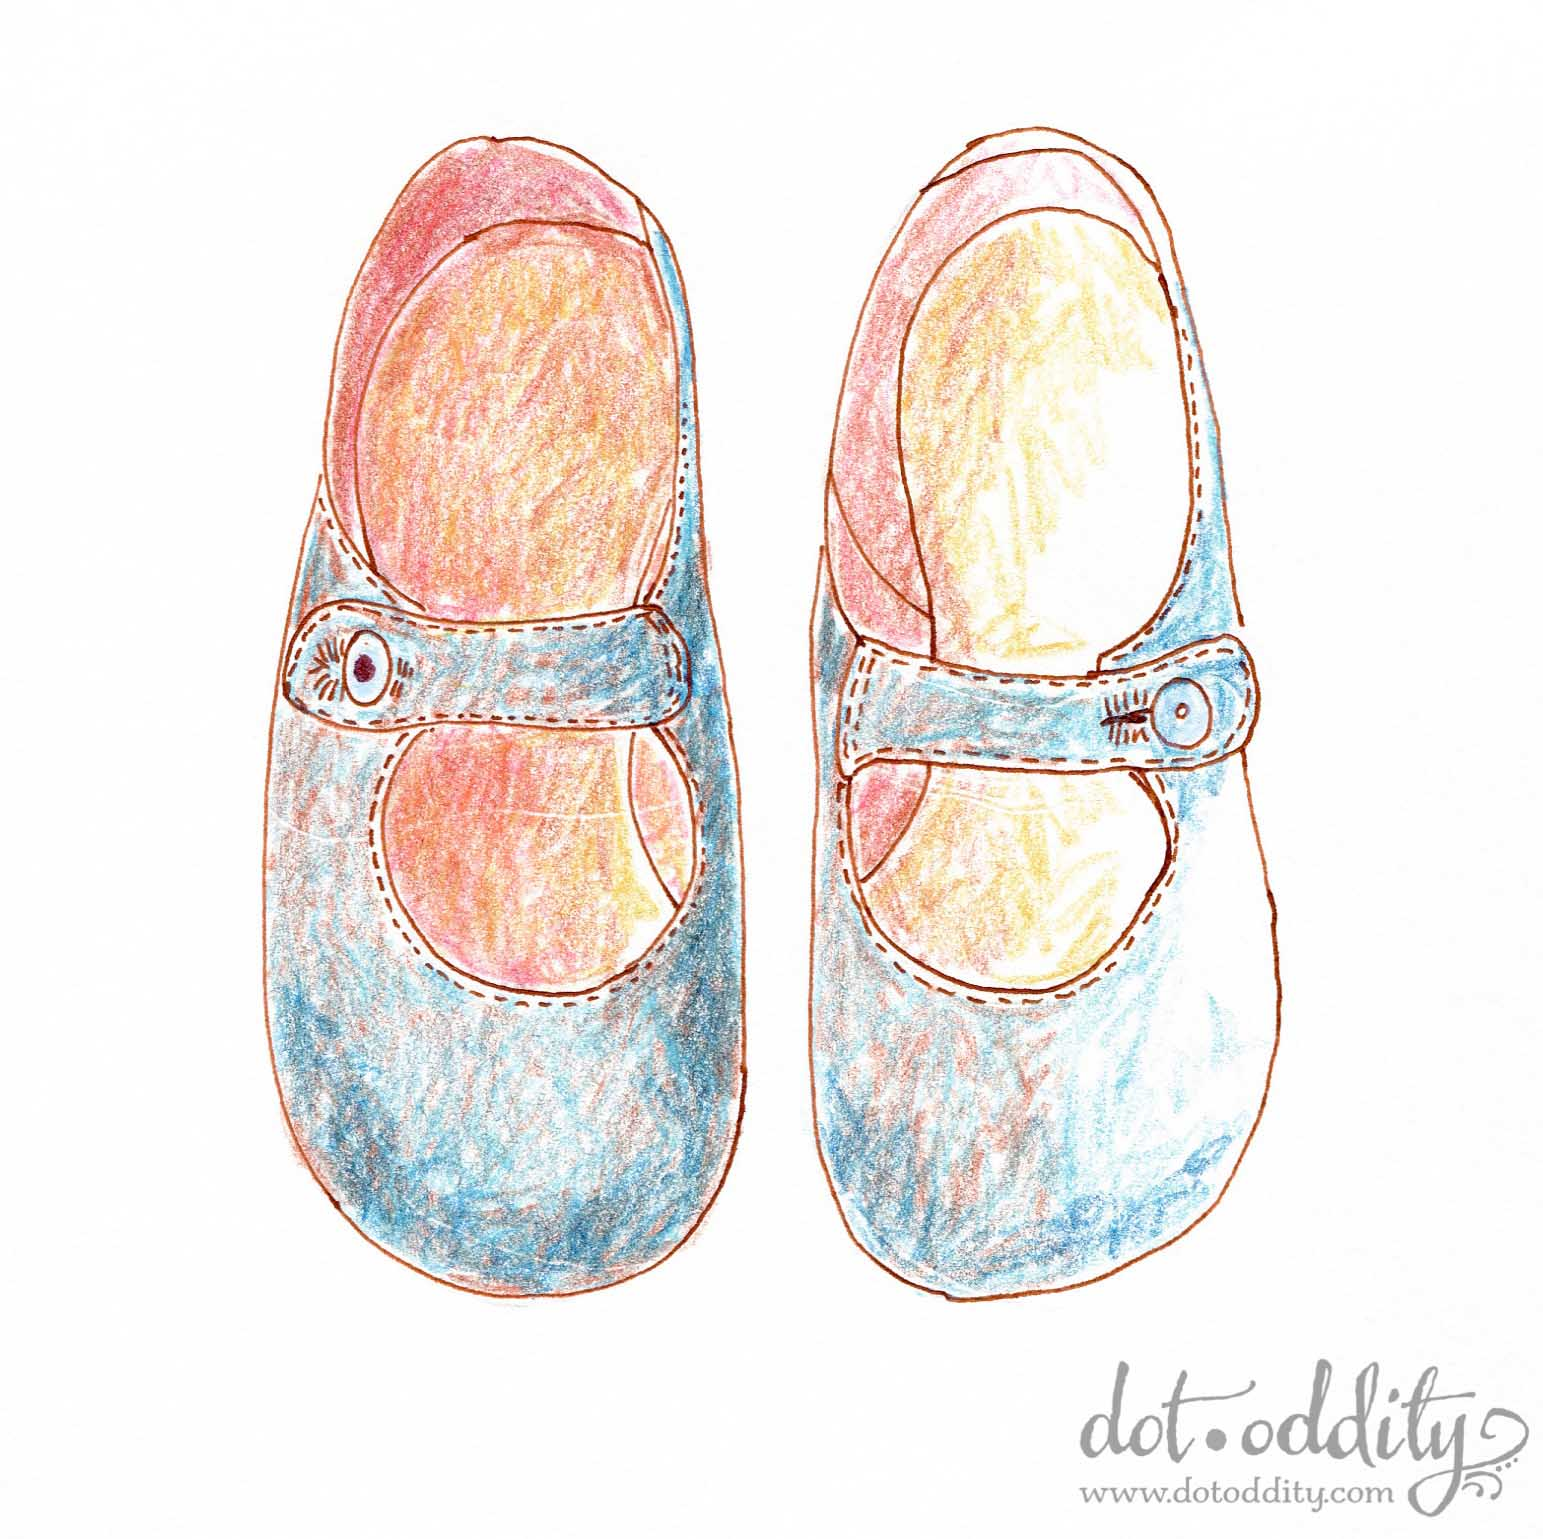 the little shoe project 2015 september by Maria Larsson